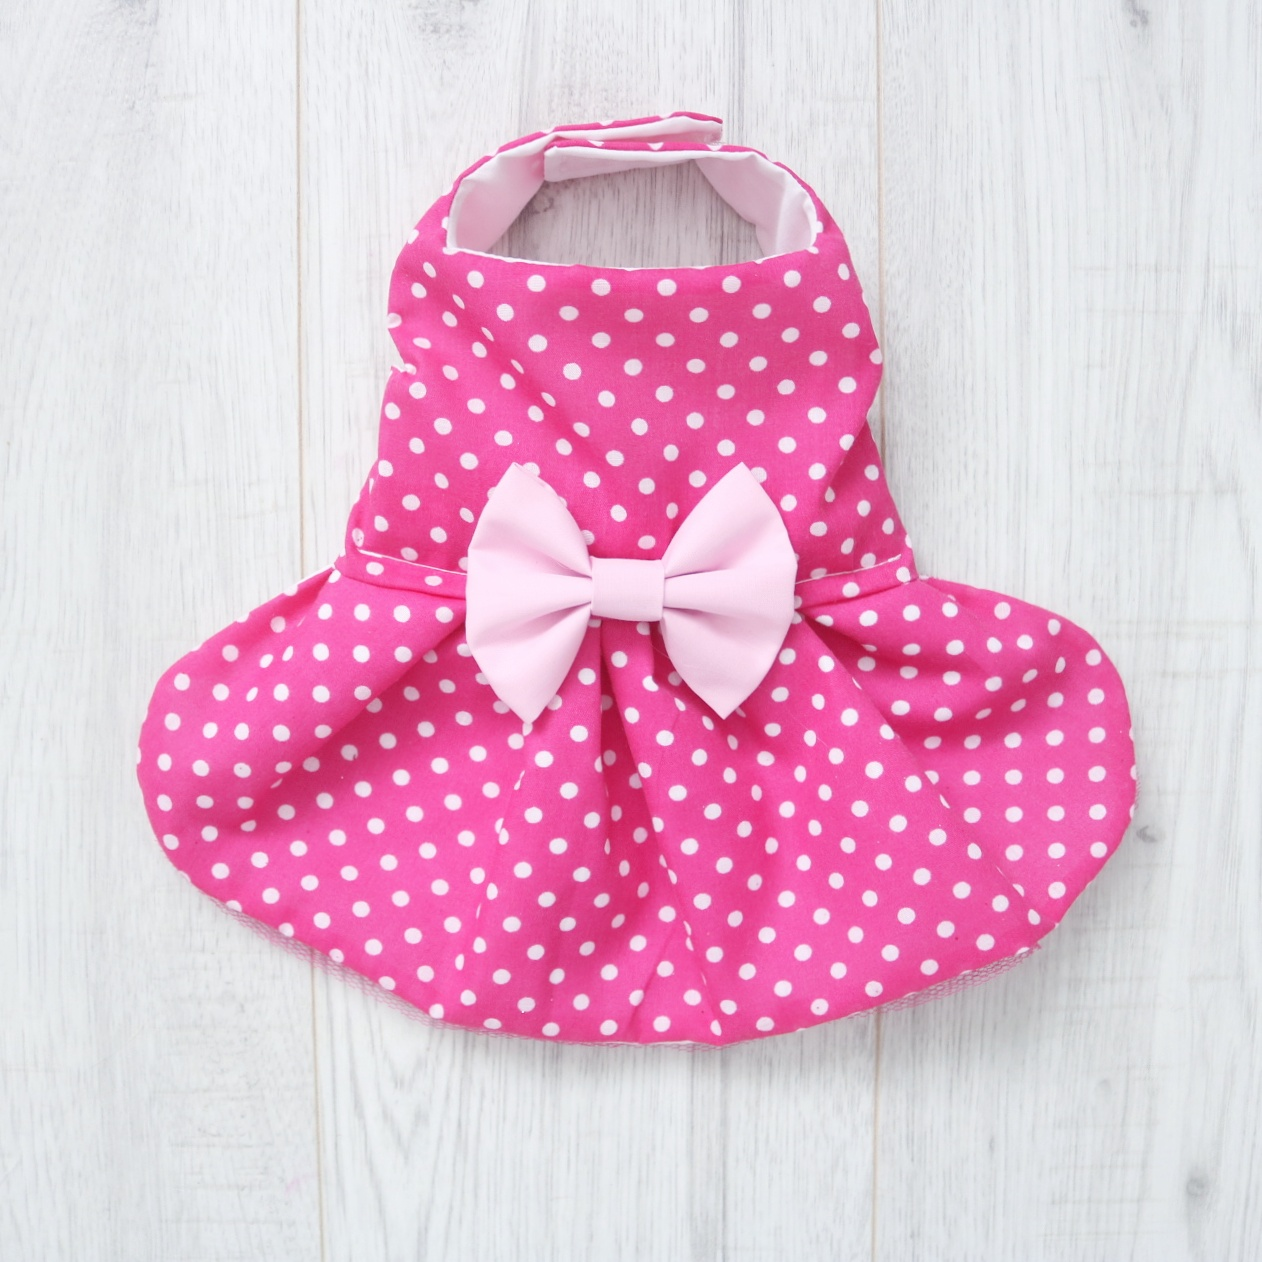 dog dress in dark pink and white polka dot